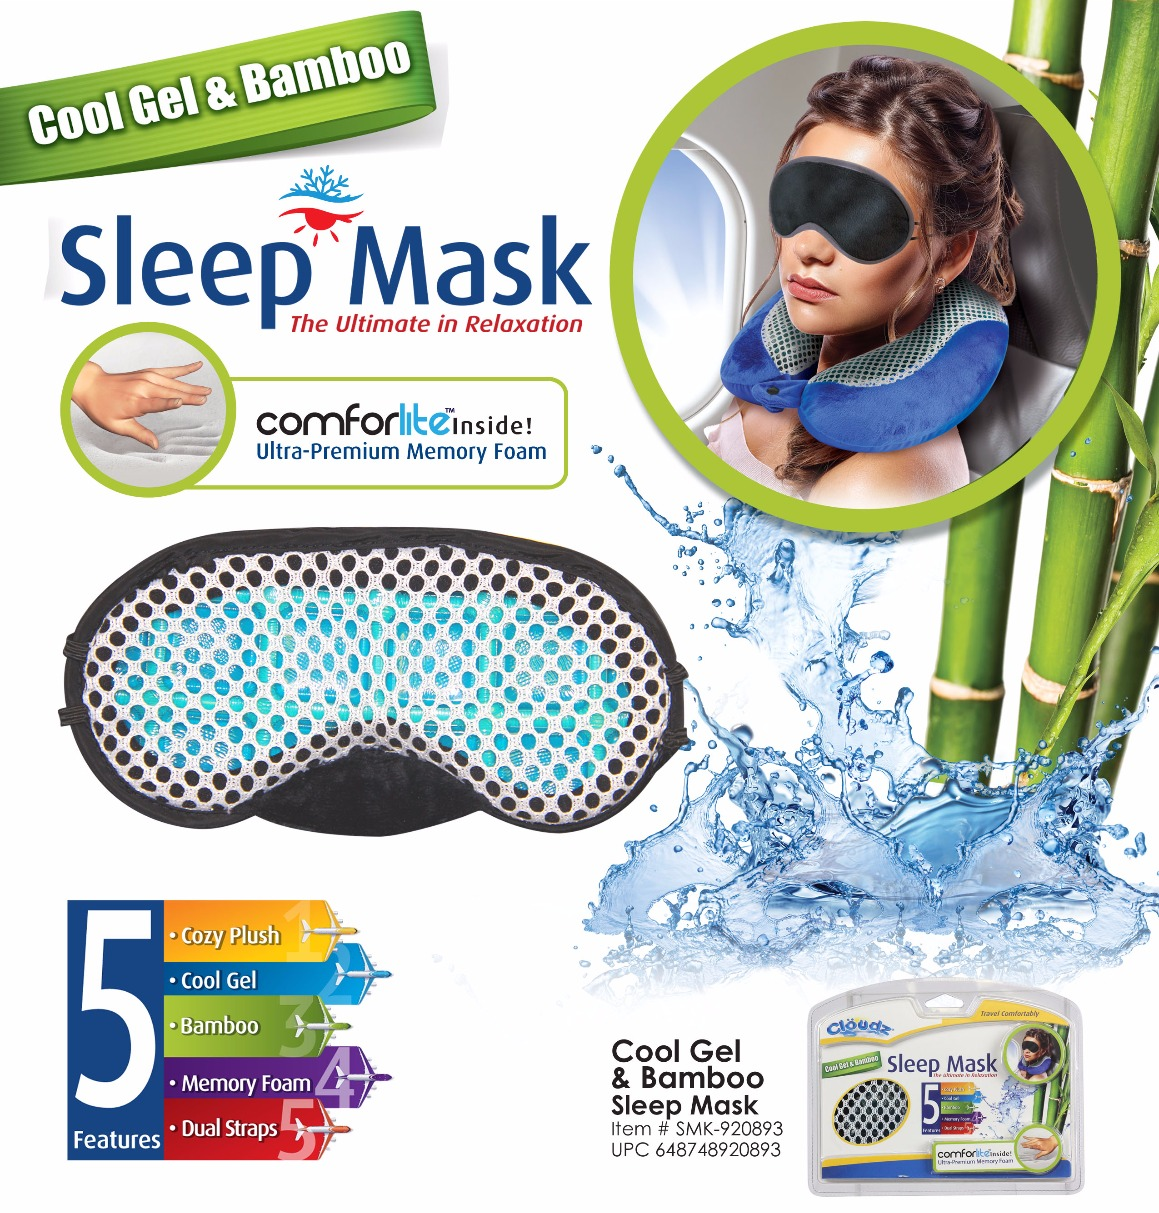 SNI_Today_Cool_gel_SleepMASK_edited